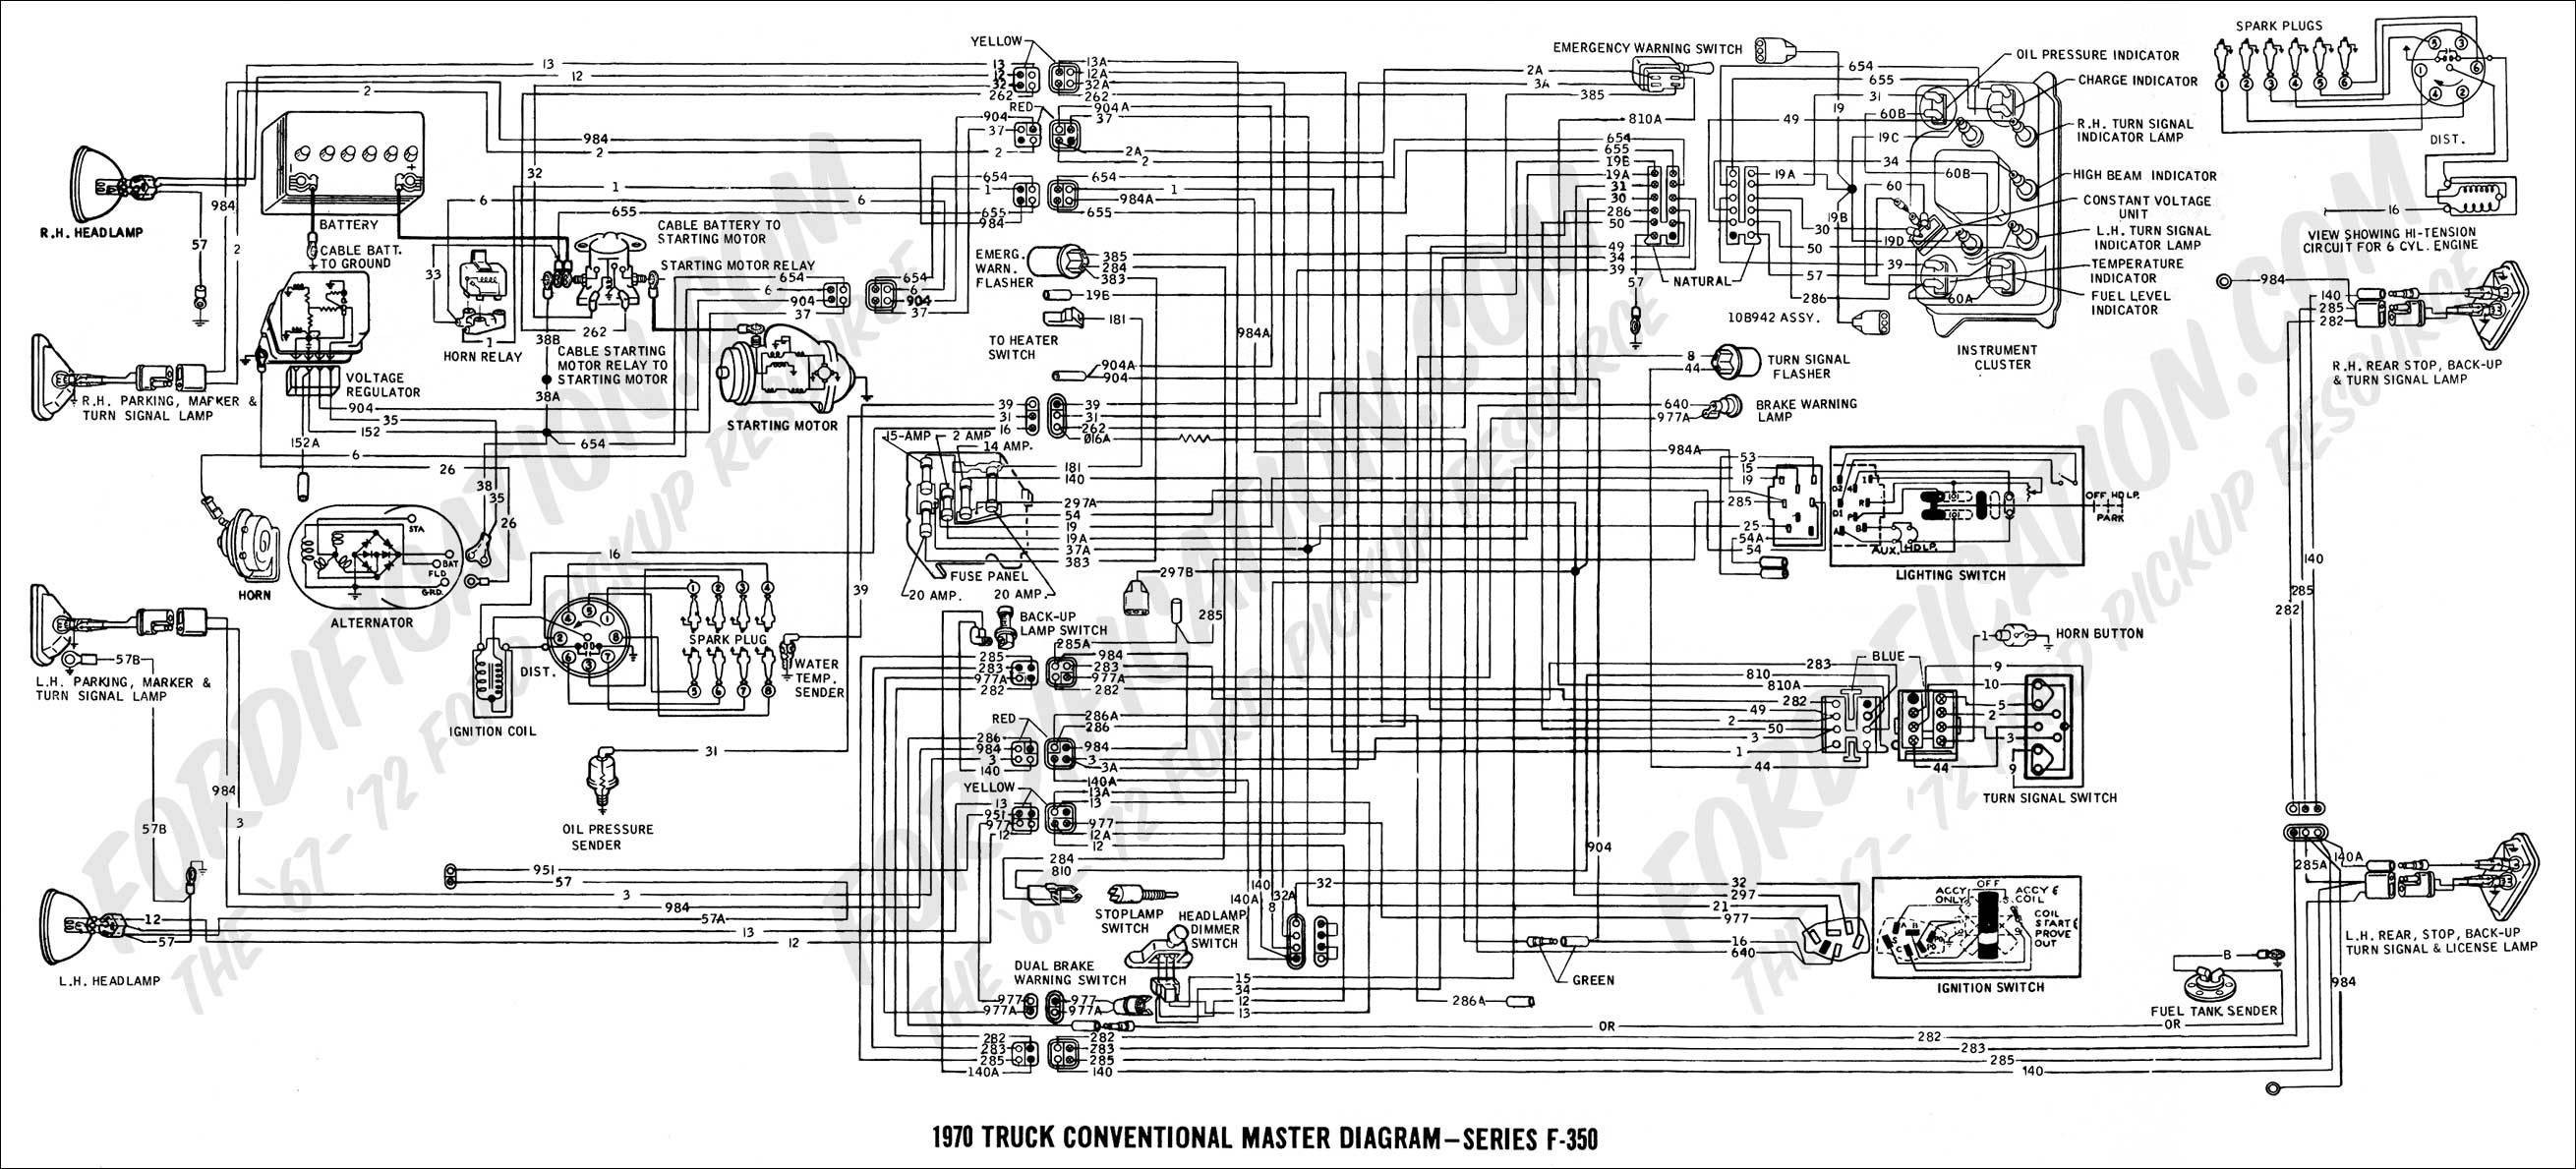 Ford Truck Wiring Diagrams Free Inspirational Free Wiring Diagram software Diagram